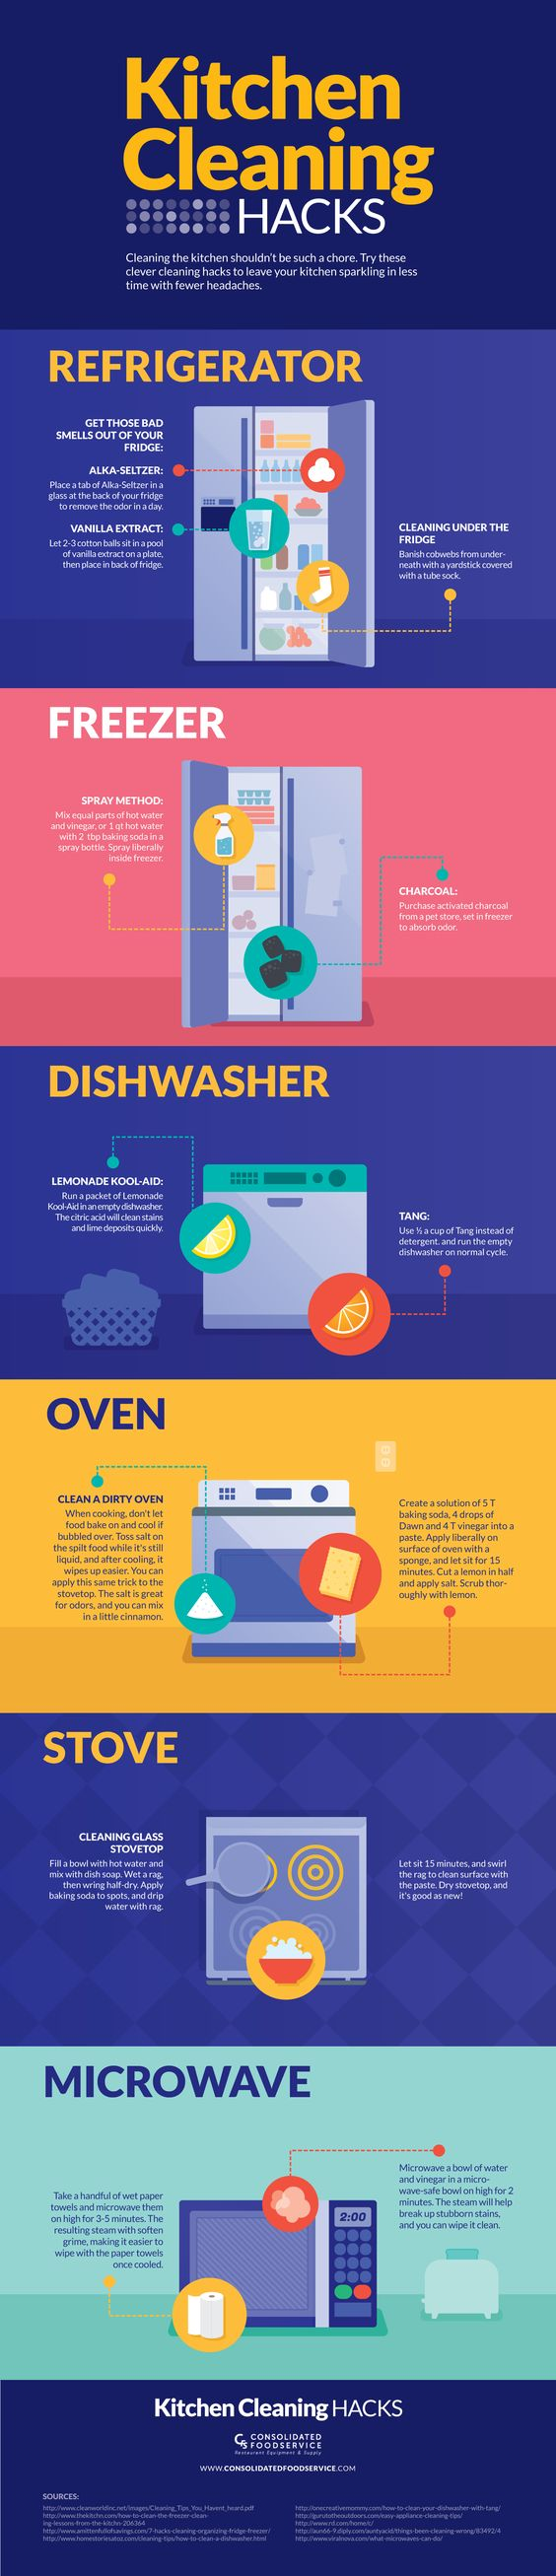 Cleaning all the appliances in your kitchen might not be your definition of fun, but a sparkling kitchen is nice to have. You can refresh your kitchen with common ingredients you probably already have in your pantry.: